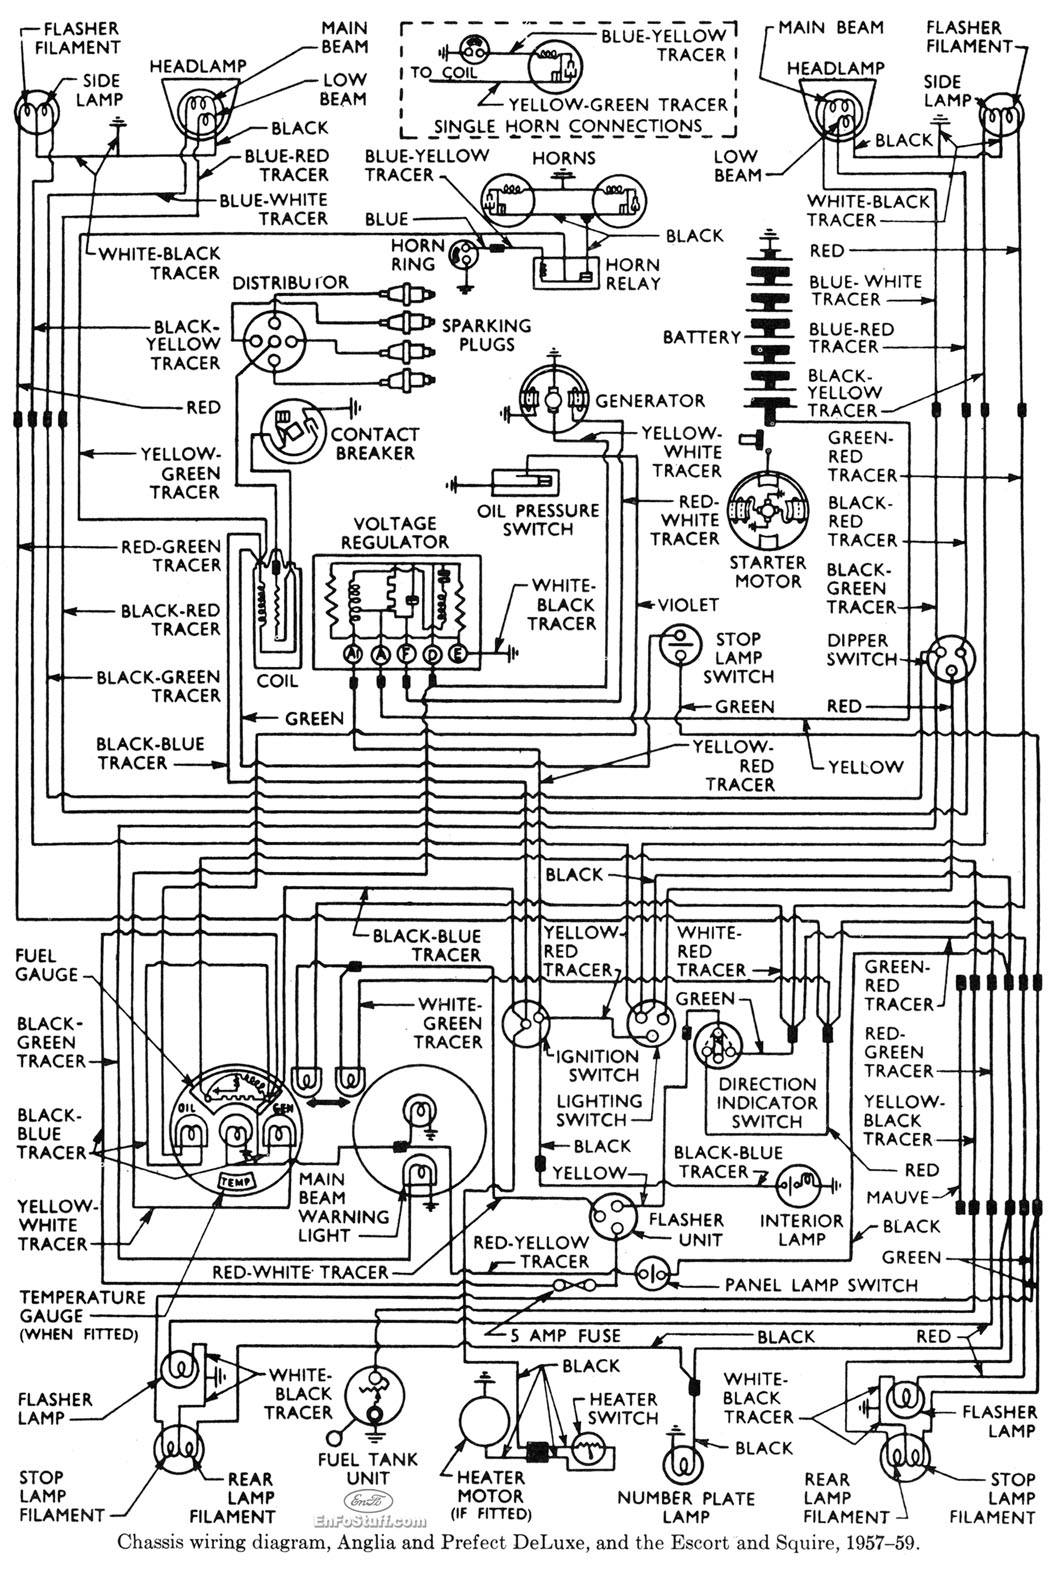 Wiring Diagram For Atv Turn Signals Data Schema Signal Diagrams 1955 T Bird 55 Ford Thunderbird Led